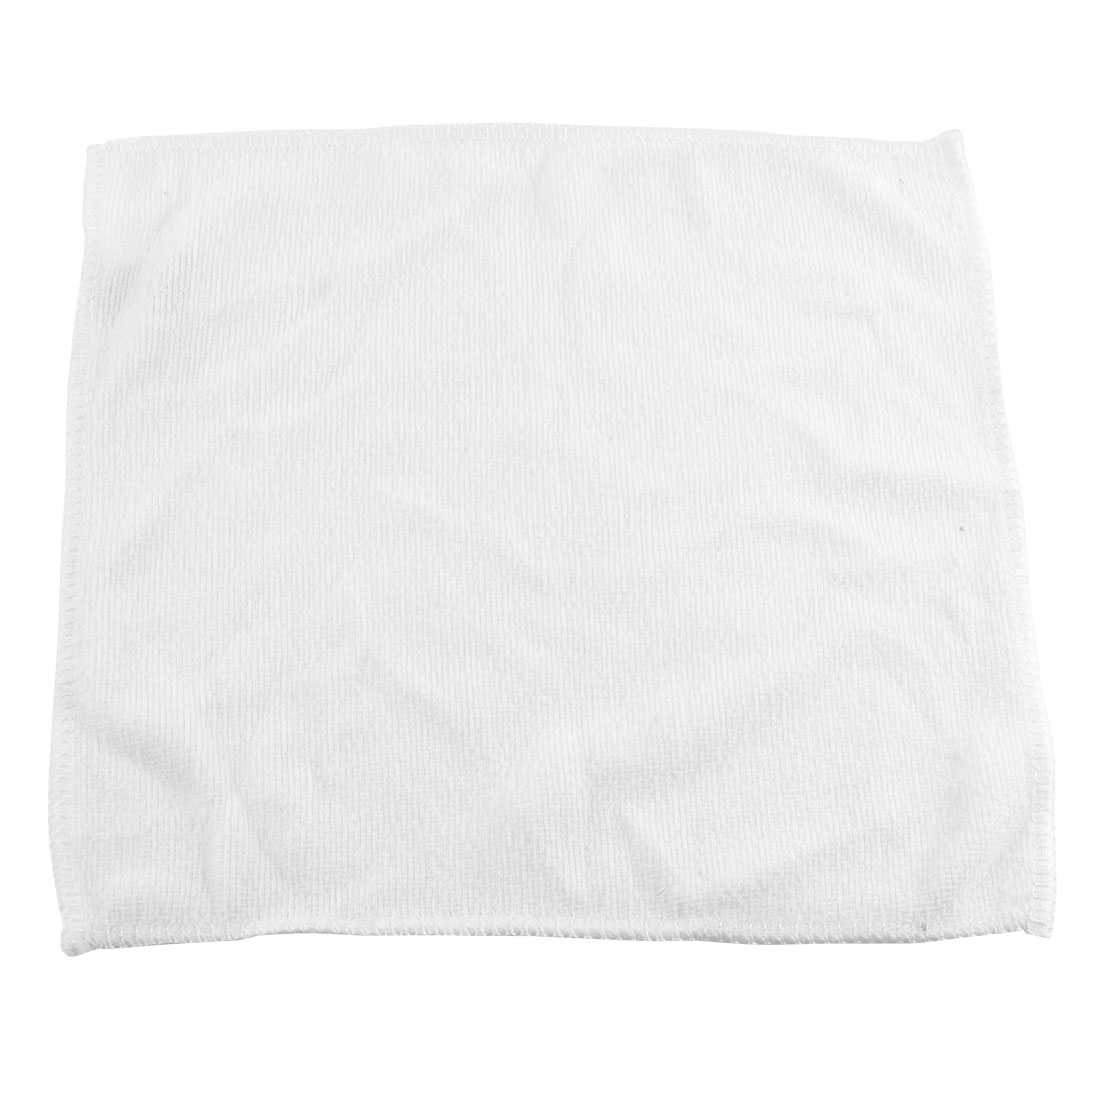 White Microfiber Water Absorbent Facial Hand Clean Drying Towels Wash Cleaning Cloths Washcloths Facecloths 25 x 25cm